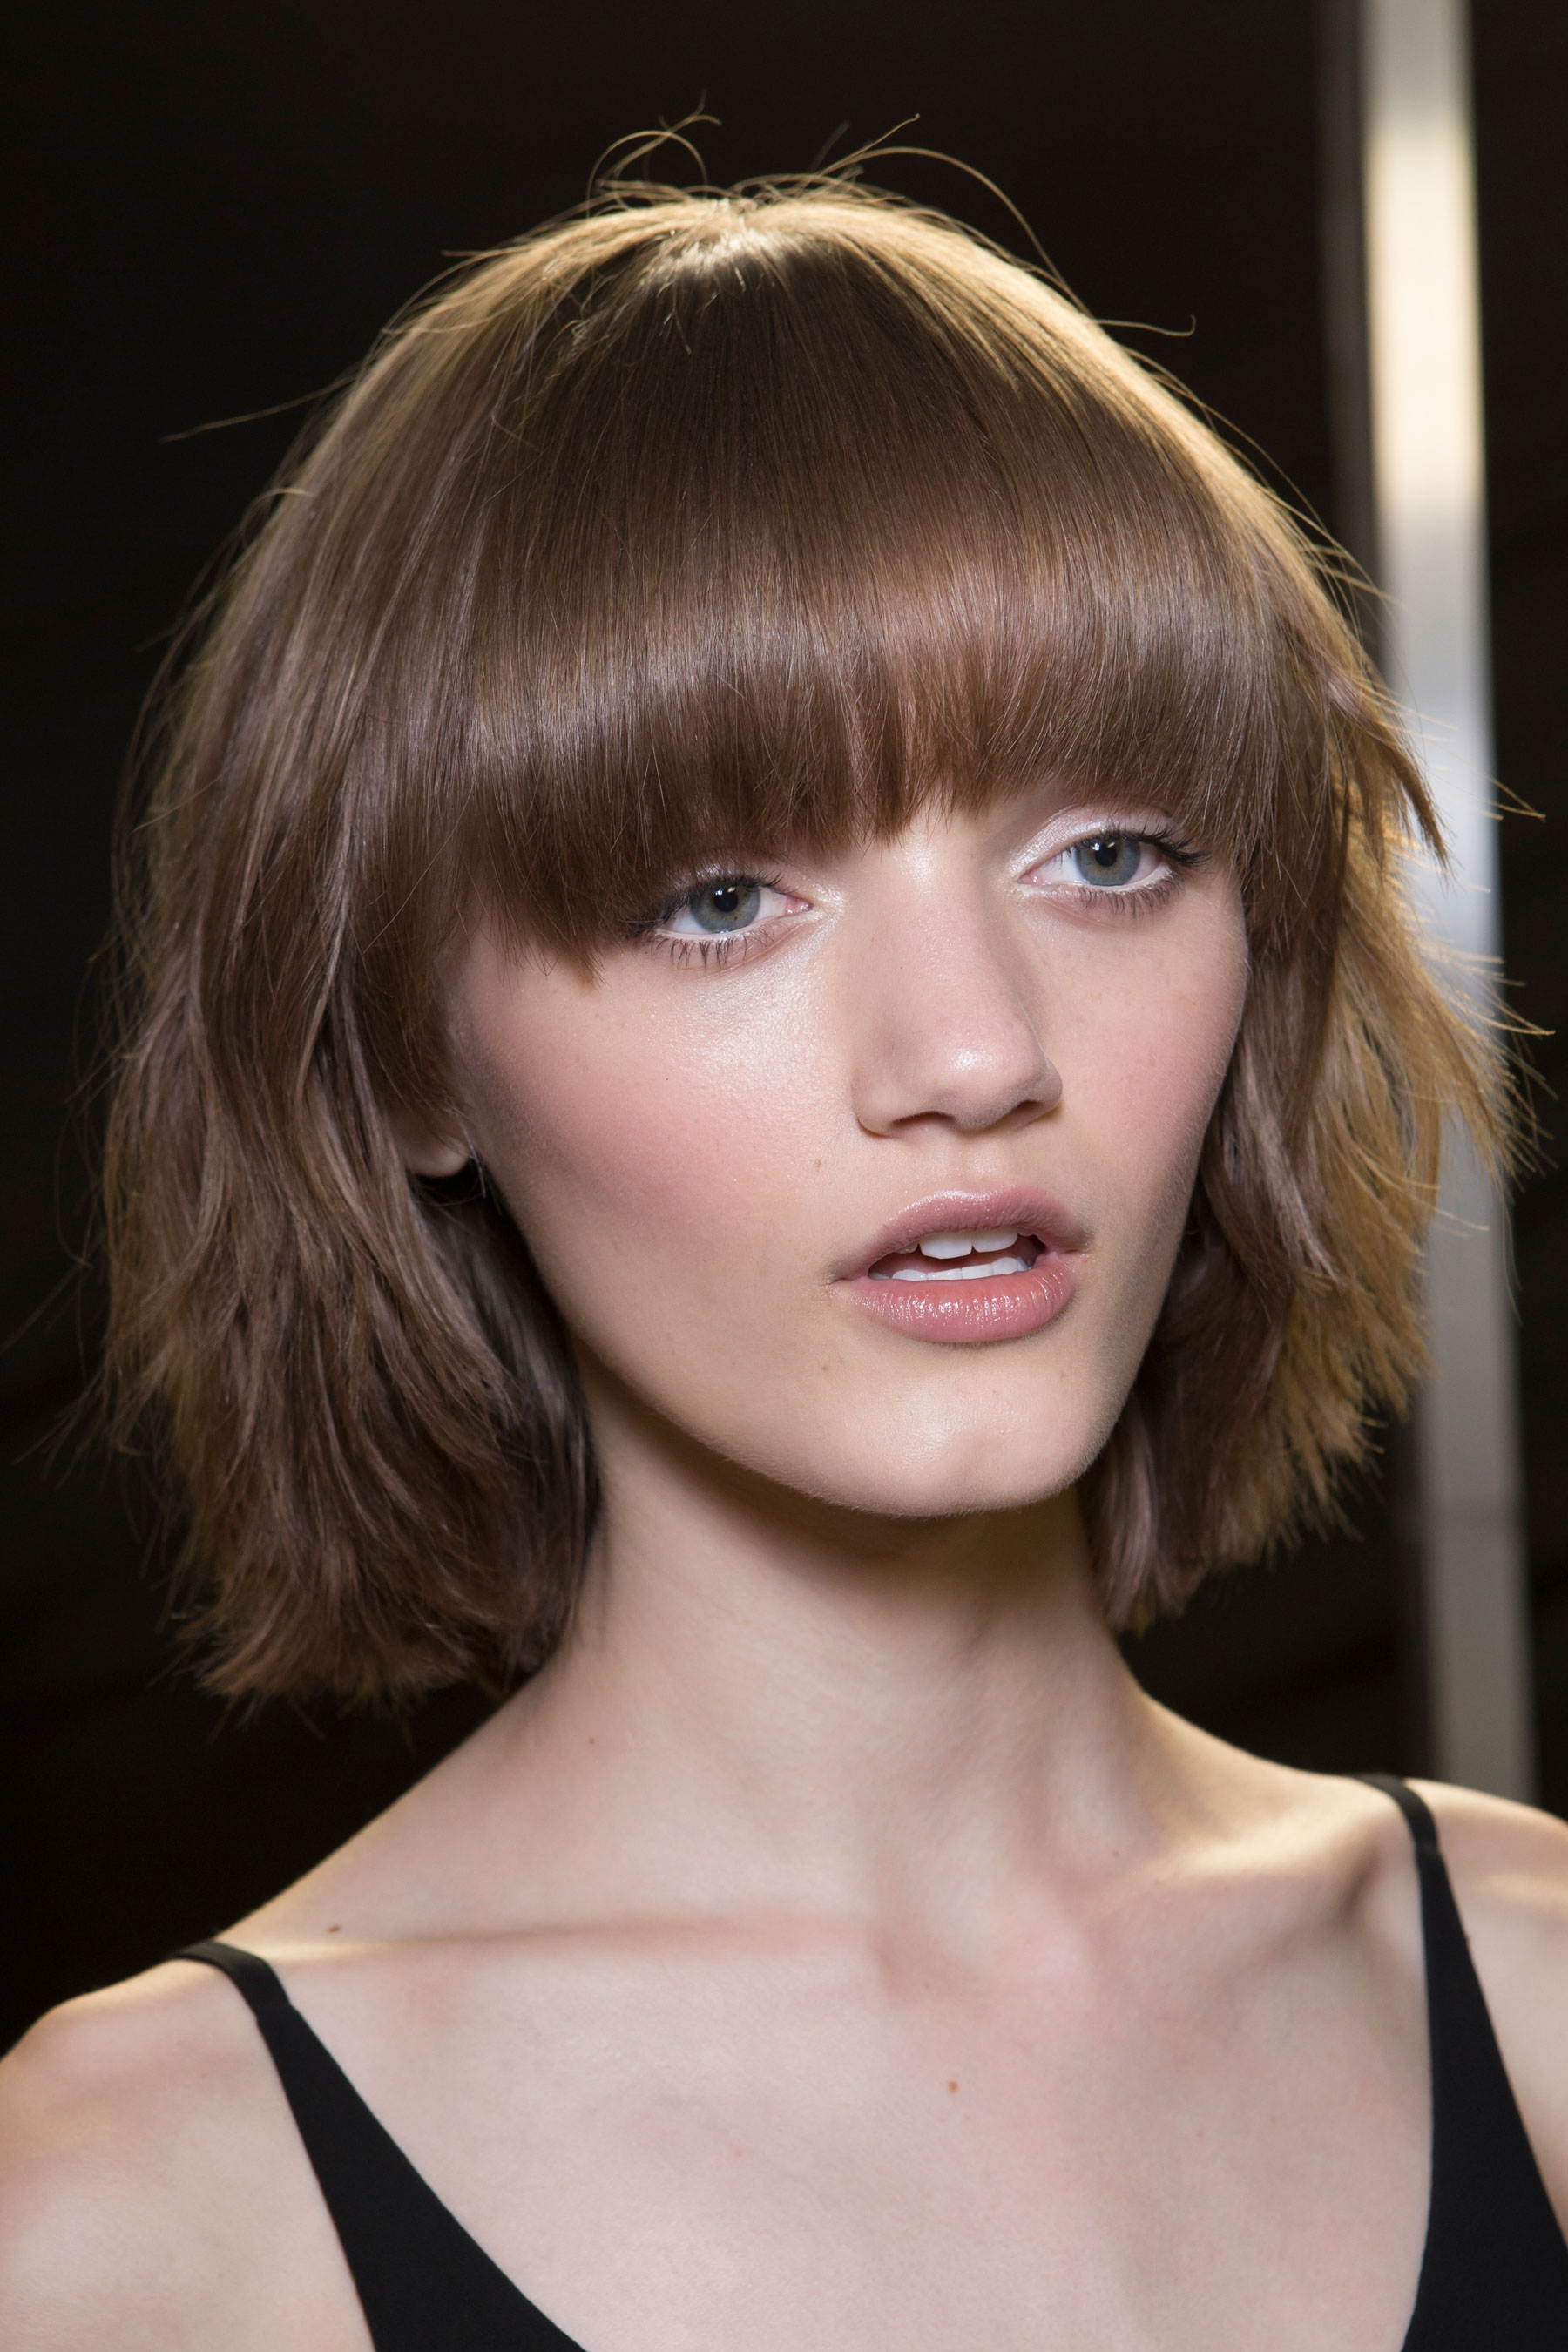 versace-backstage-beauty-spring-2016-fashion-show-the-impression-081